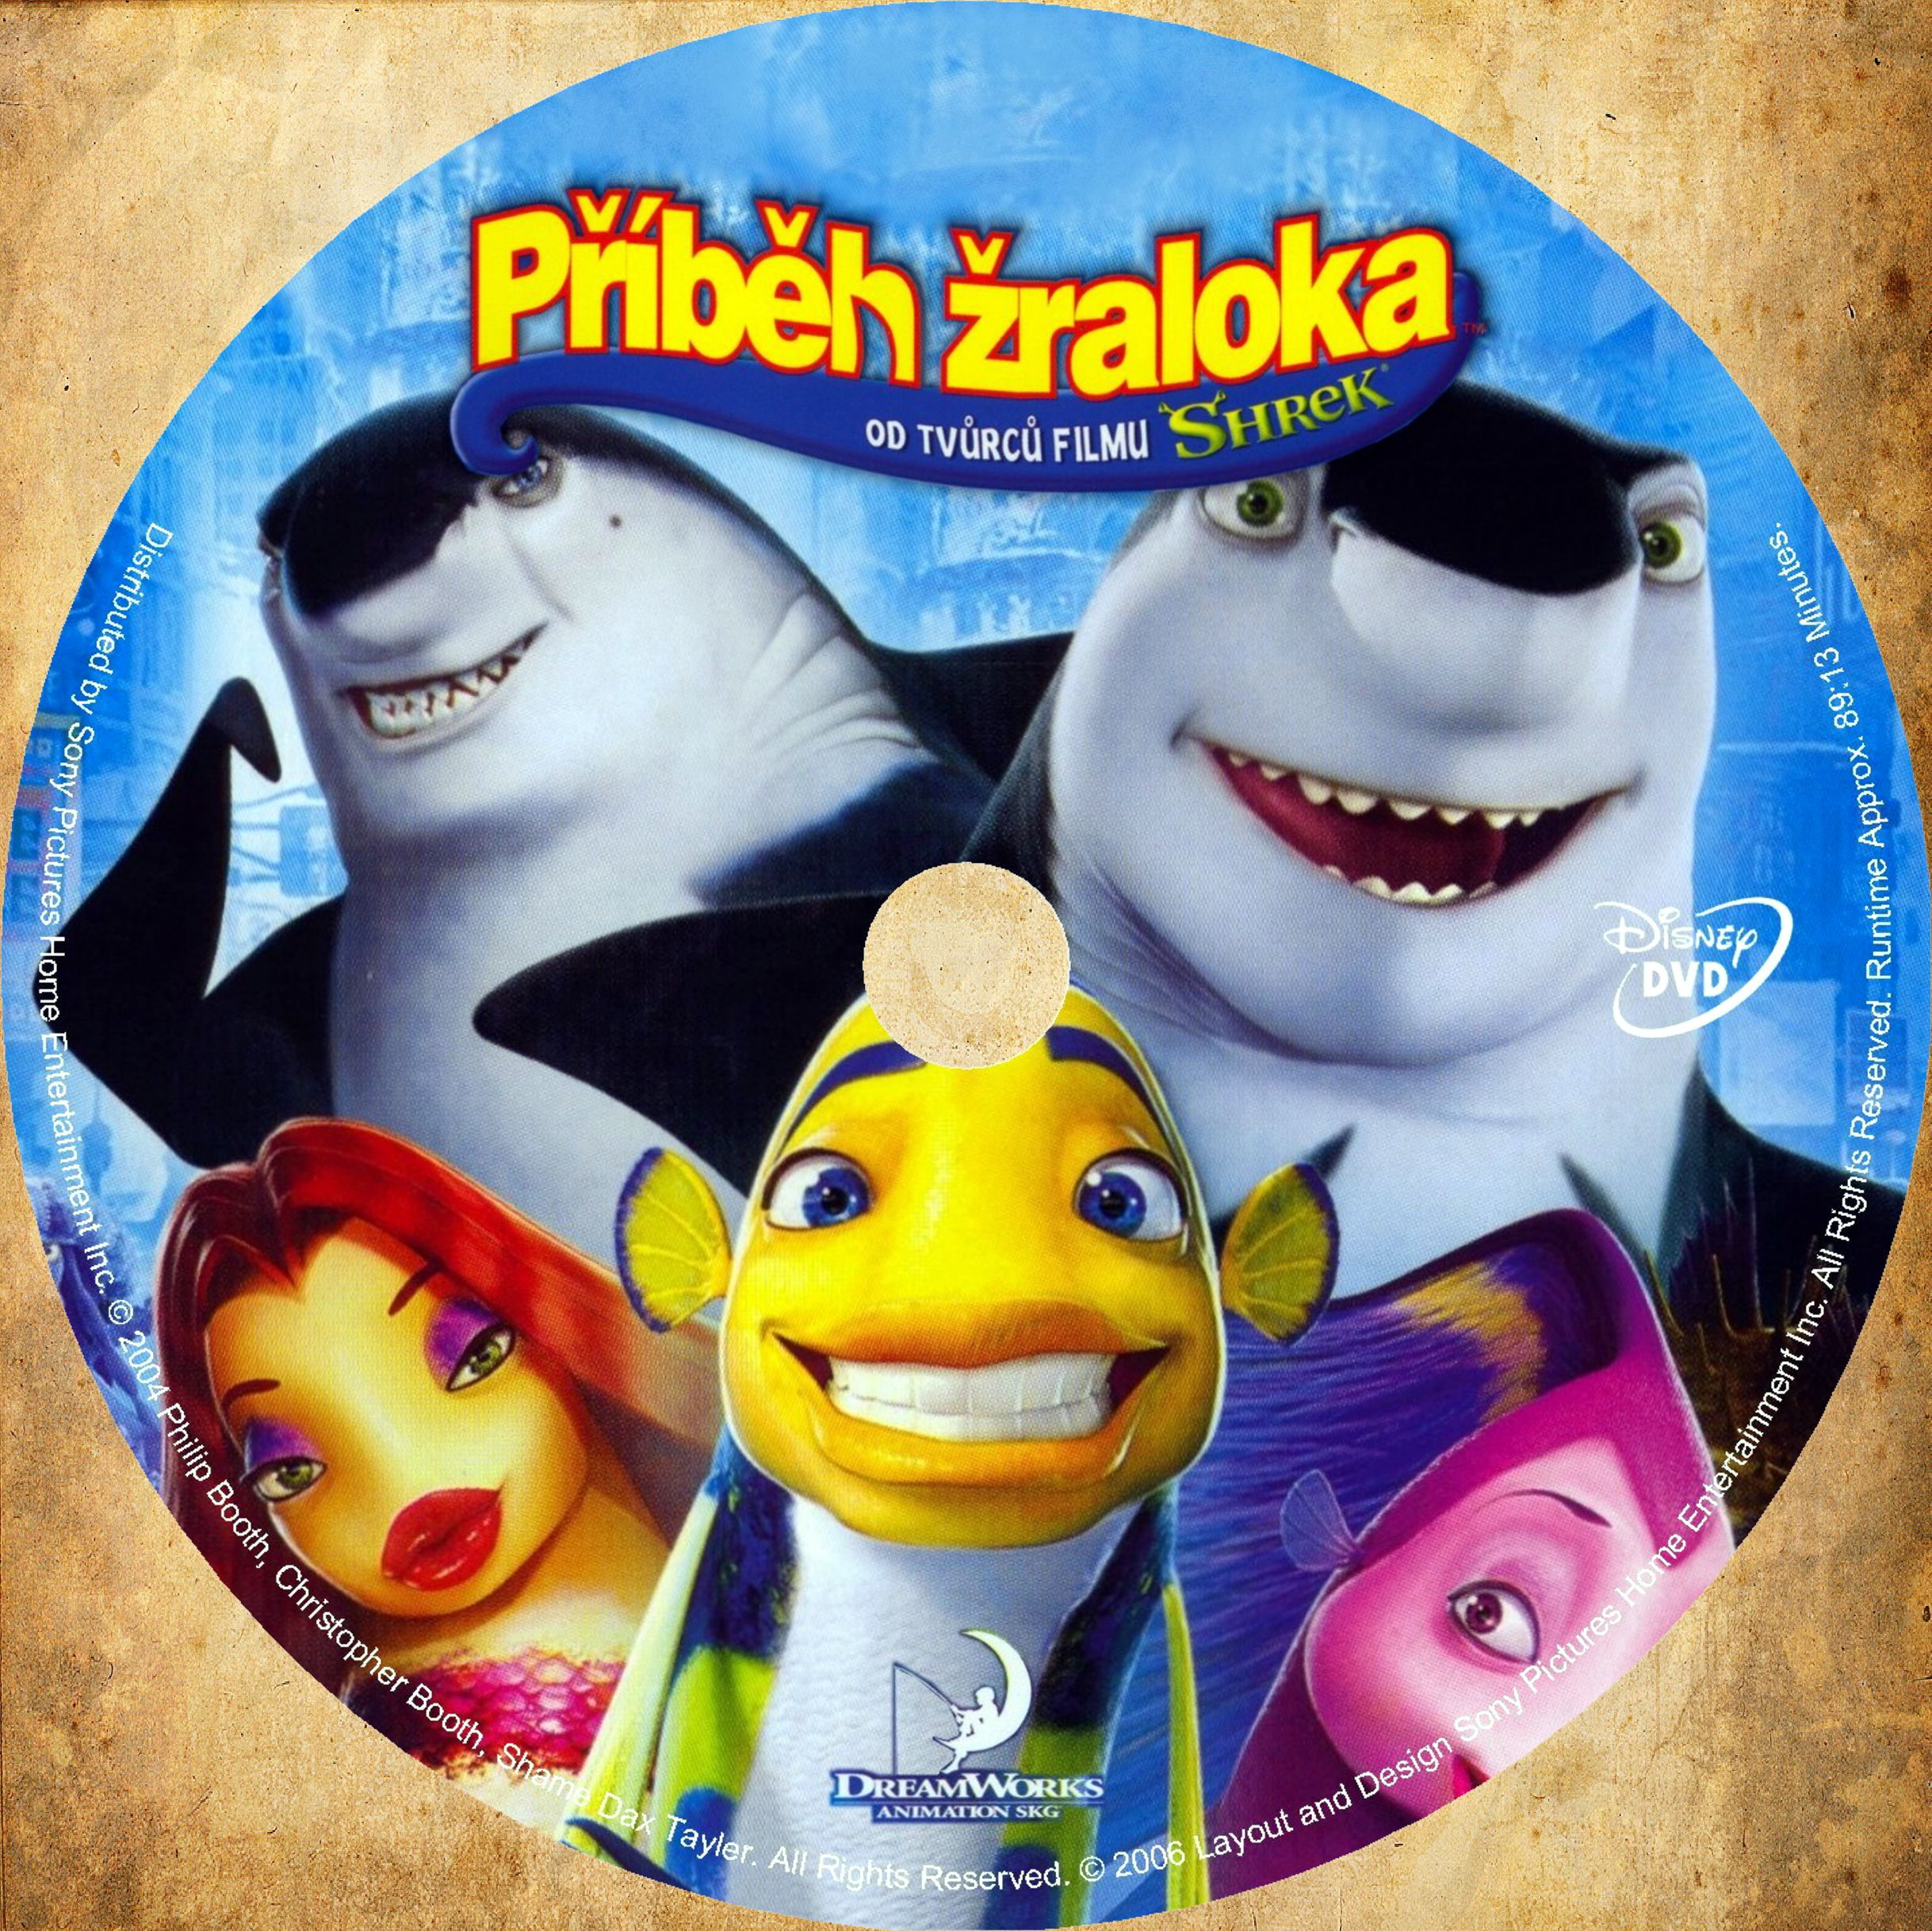 Covers Box Sk Shark Tale 2004 High Quality Dvd Blueray Movie